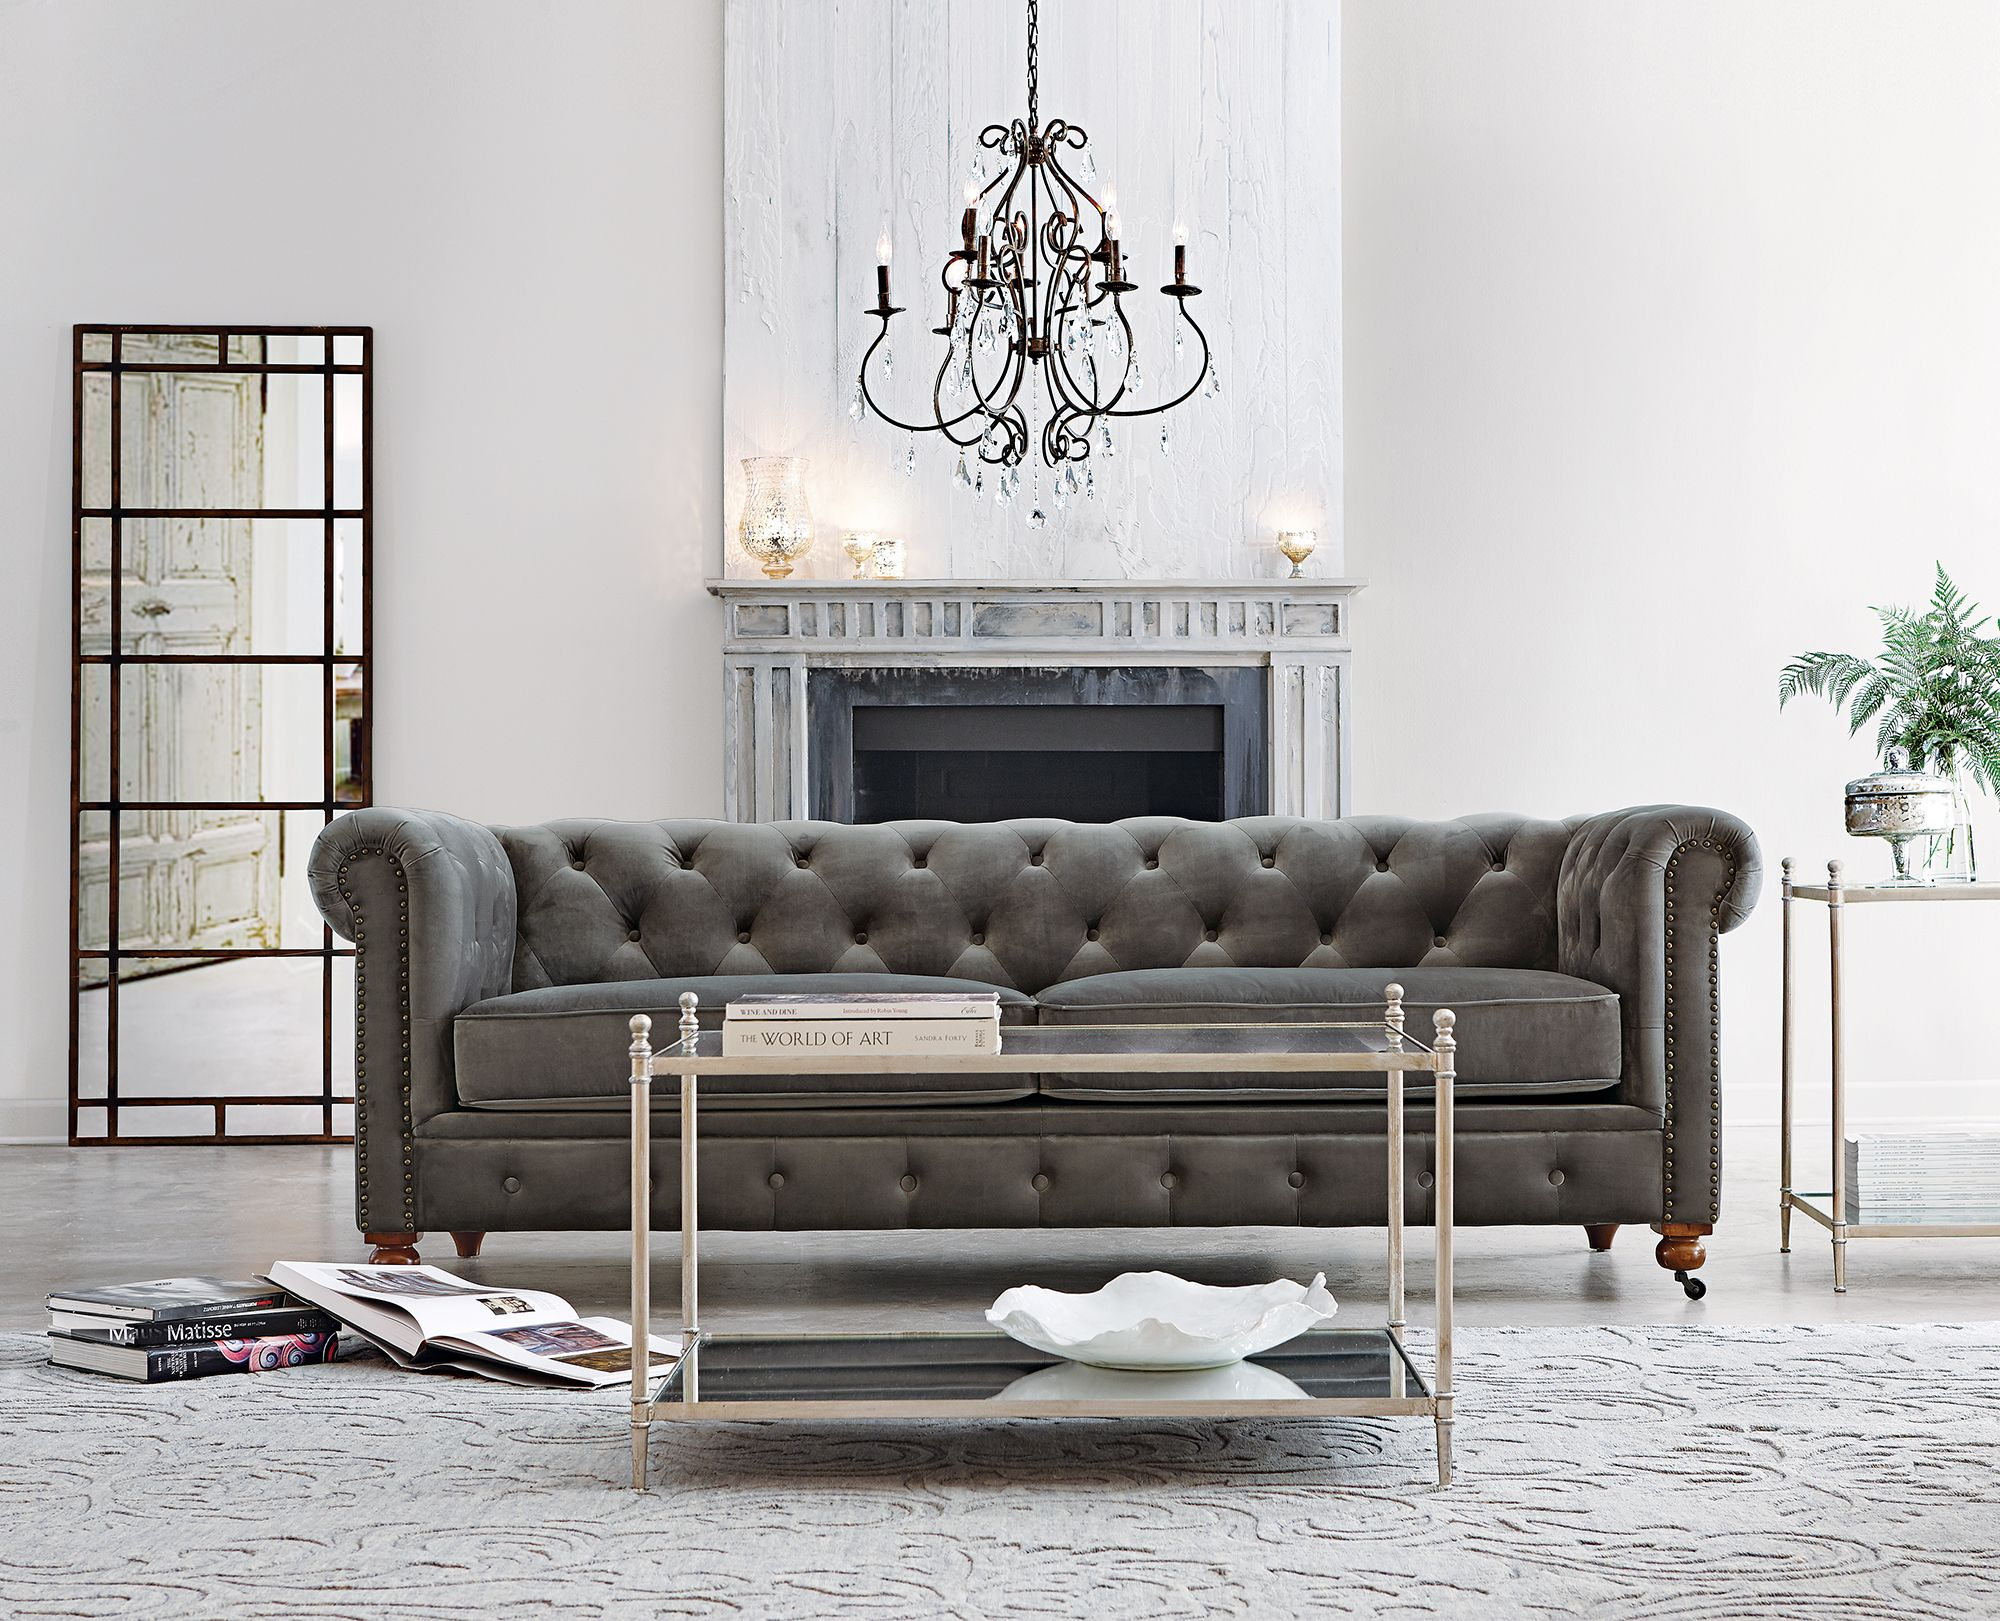 Nice Gray Tufted Couch Perfect Gray Tufted Couch 62 Sofa Room